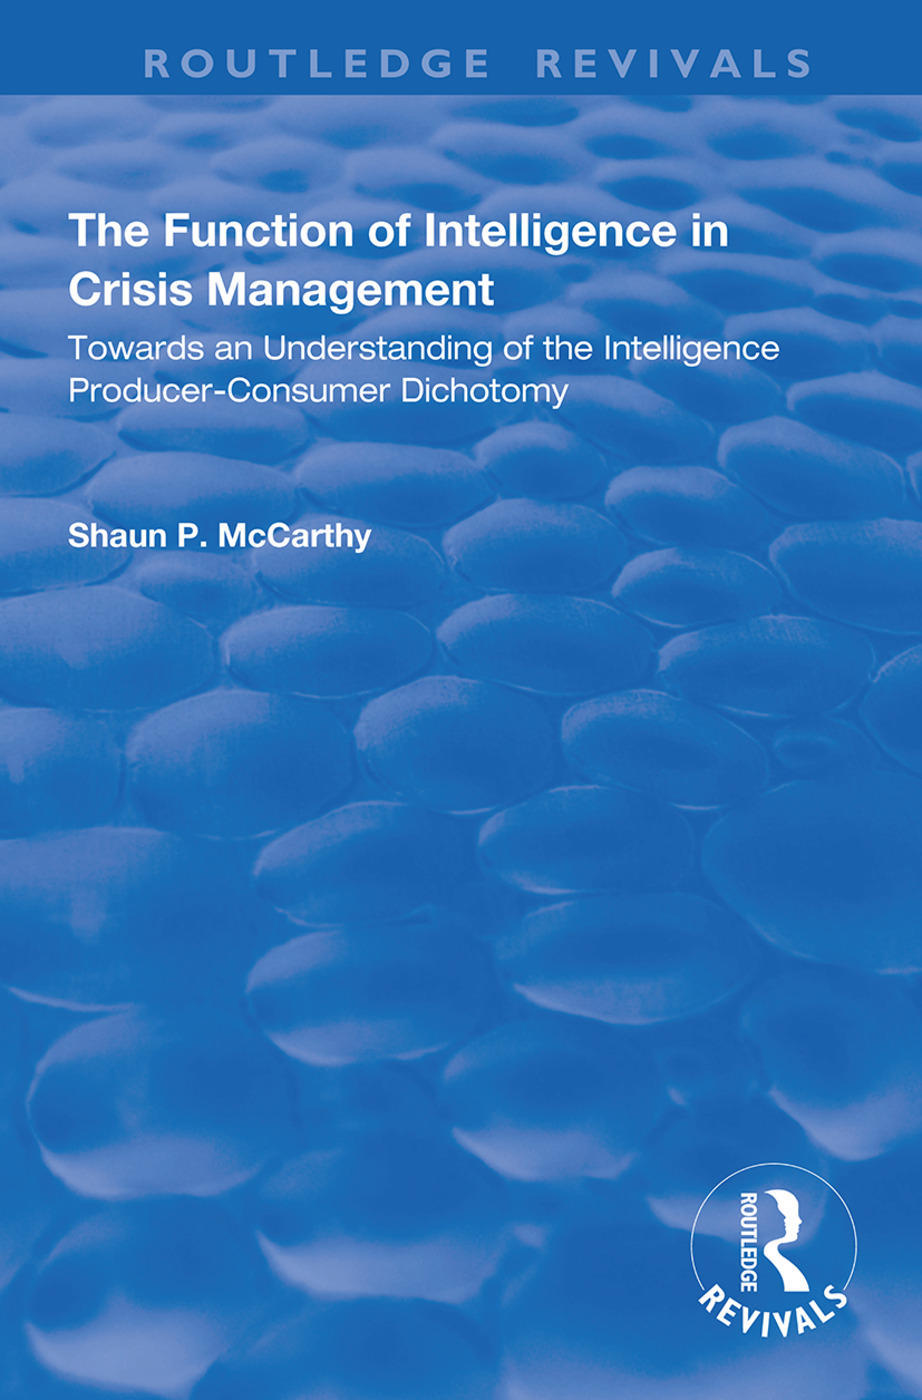 The Function of Intelligence in Crisis Management: Towards an Understanding of the Intelligence Producer-Consumer Dichotomy book cover